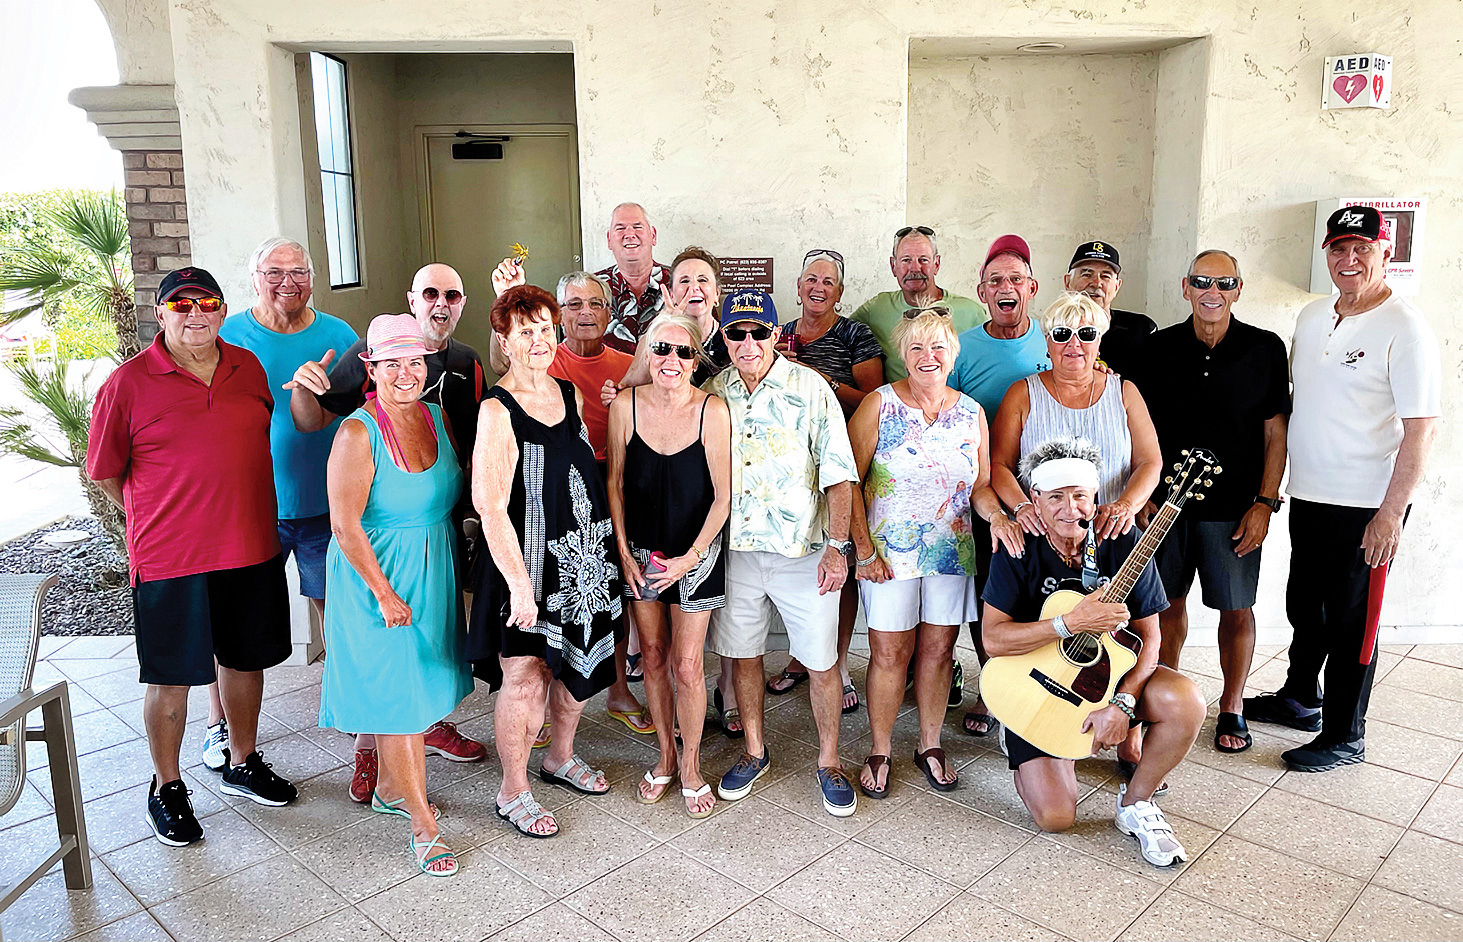 First row (left to right): Nadine Koch, Betty Chambers, Janice Rossi, Dennis Roelker, Marilyn Kinnie, Barb Dildine, and Alan Hoxie (kneeling); Second row: Steve Farley, Ted Blaine, Bill Fenster, Terry Rossi, Mike Coombs, Barbie Heck, Barb Dunson, Steve Domholt, Dave Burch, Josh Rabinowitz, Phil Duran, and Mark Peacock.